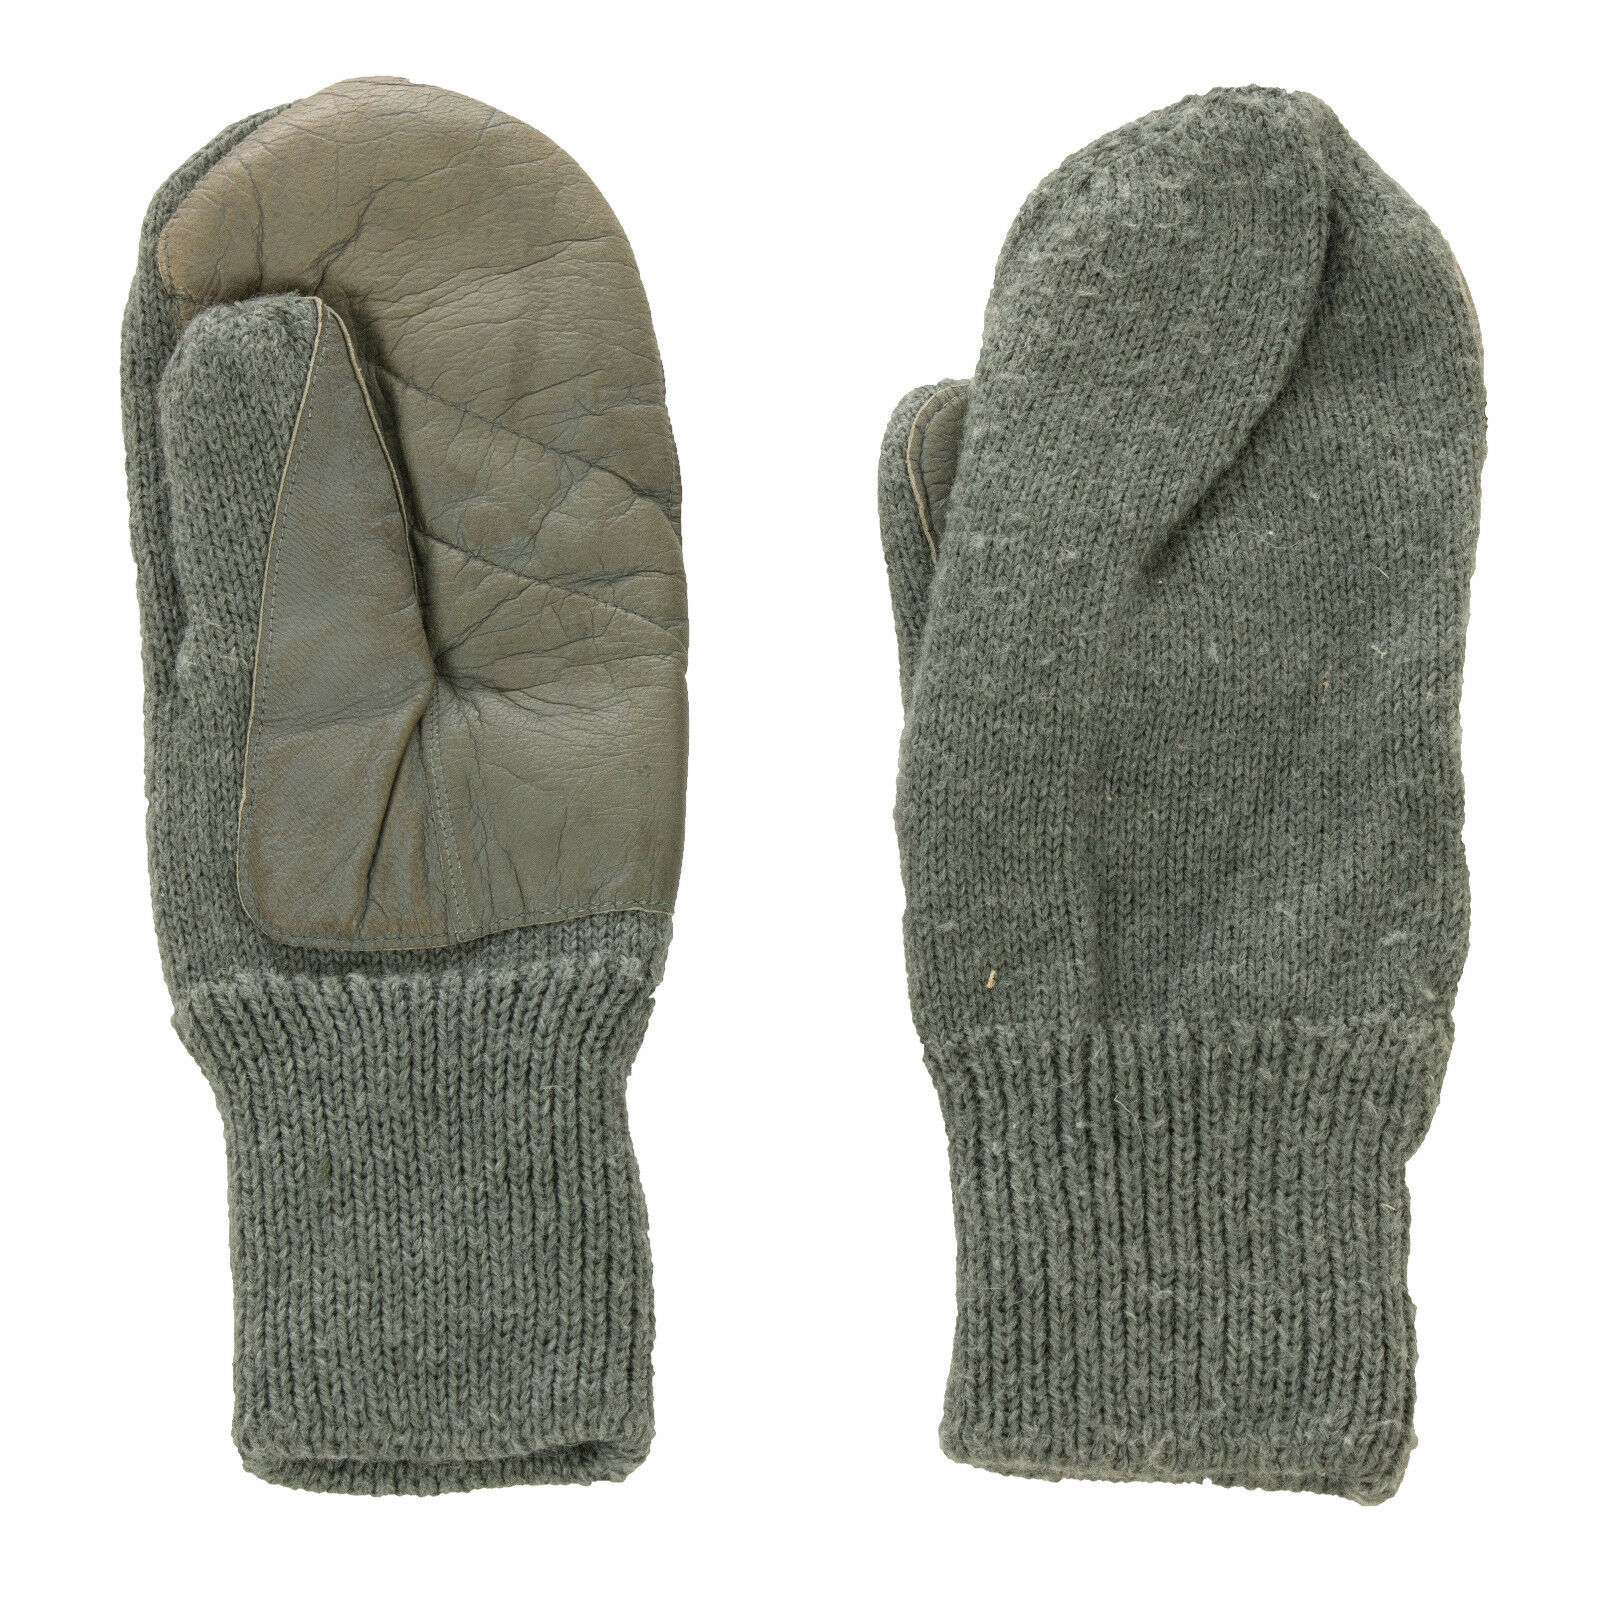 Swiss Army Winter Knitted Wool Mitts Grey Mittens with Leather Palm Area Grade 1